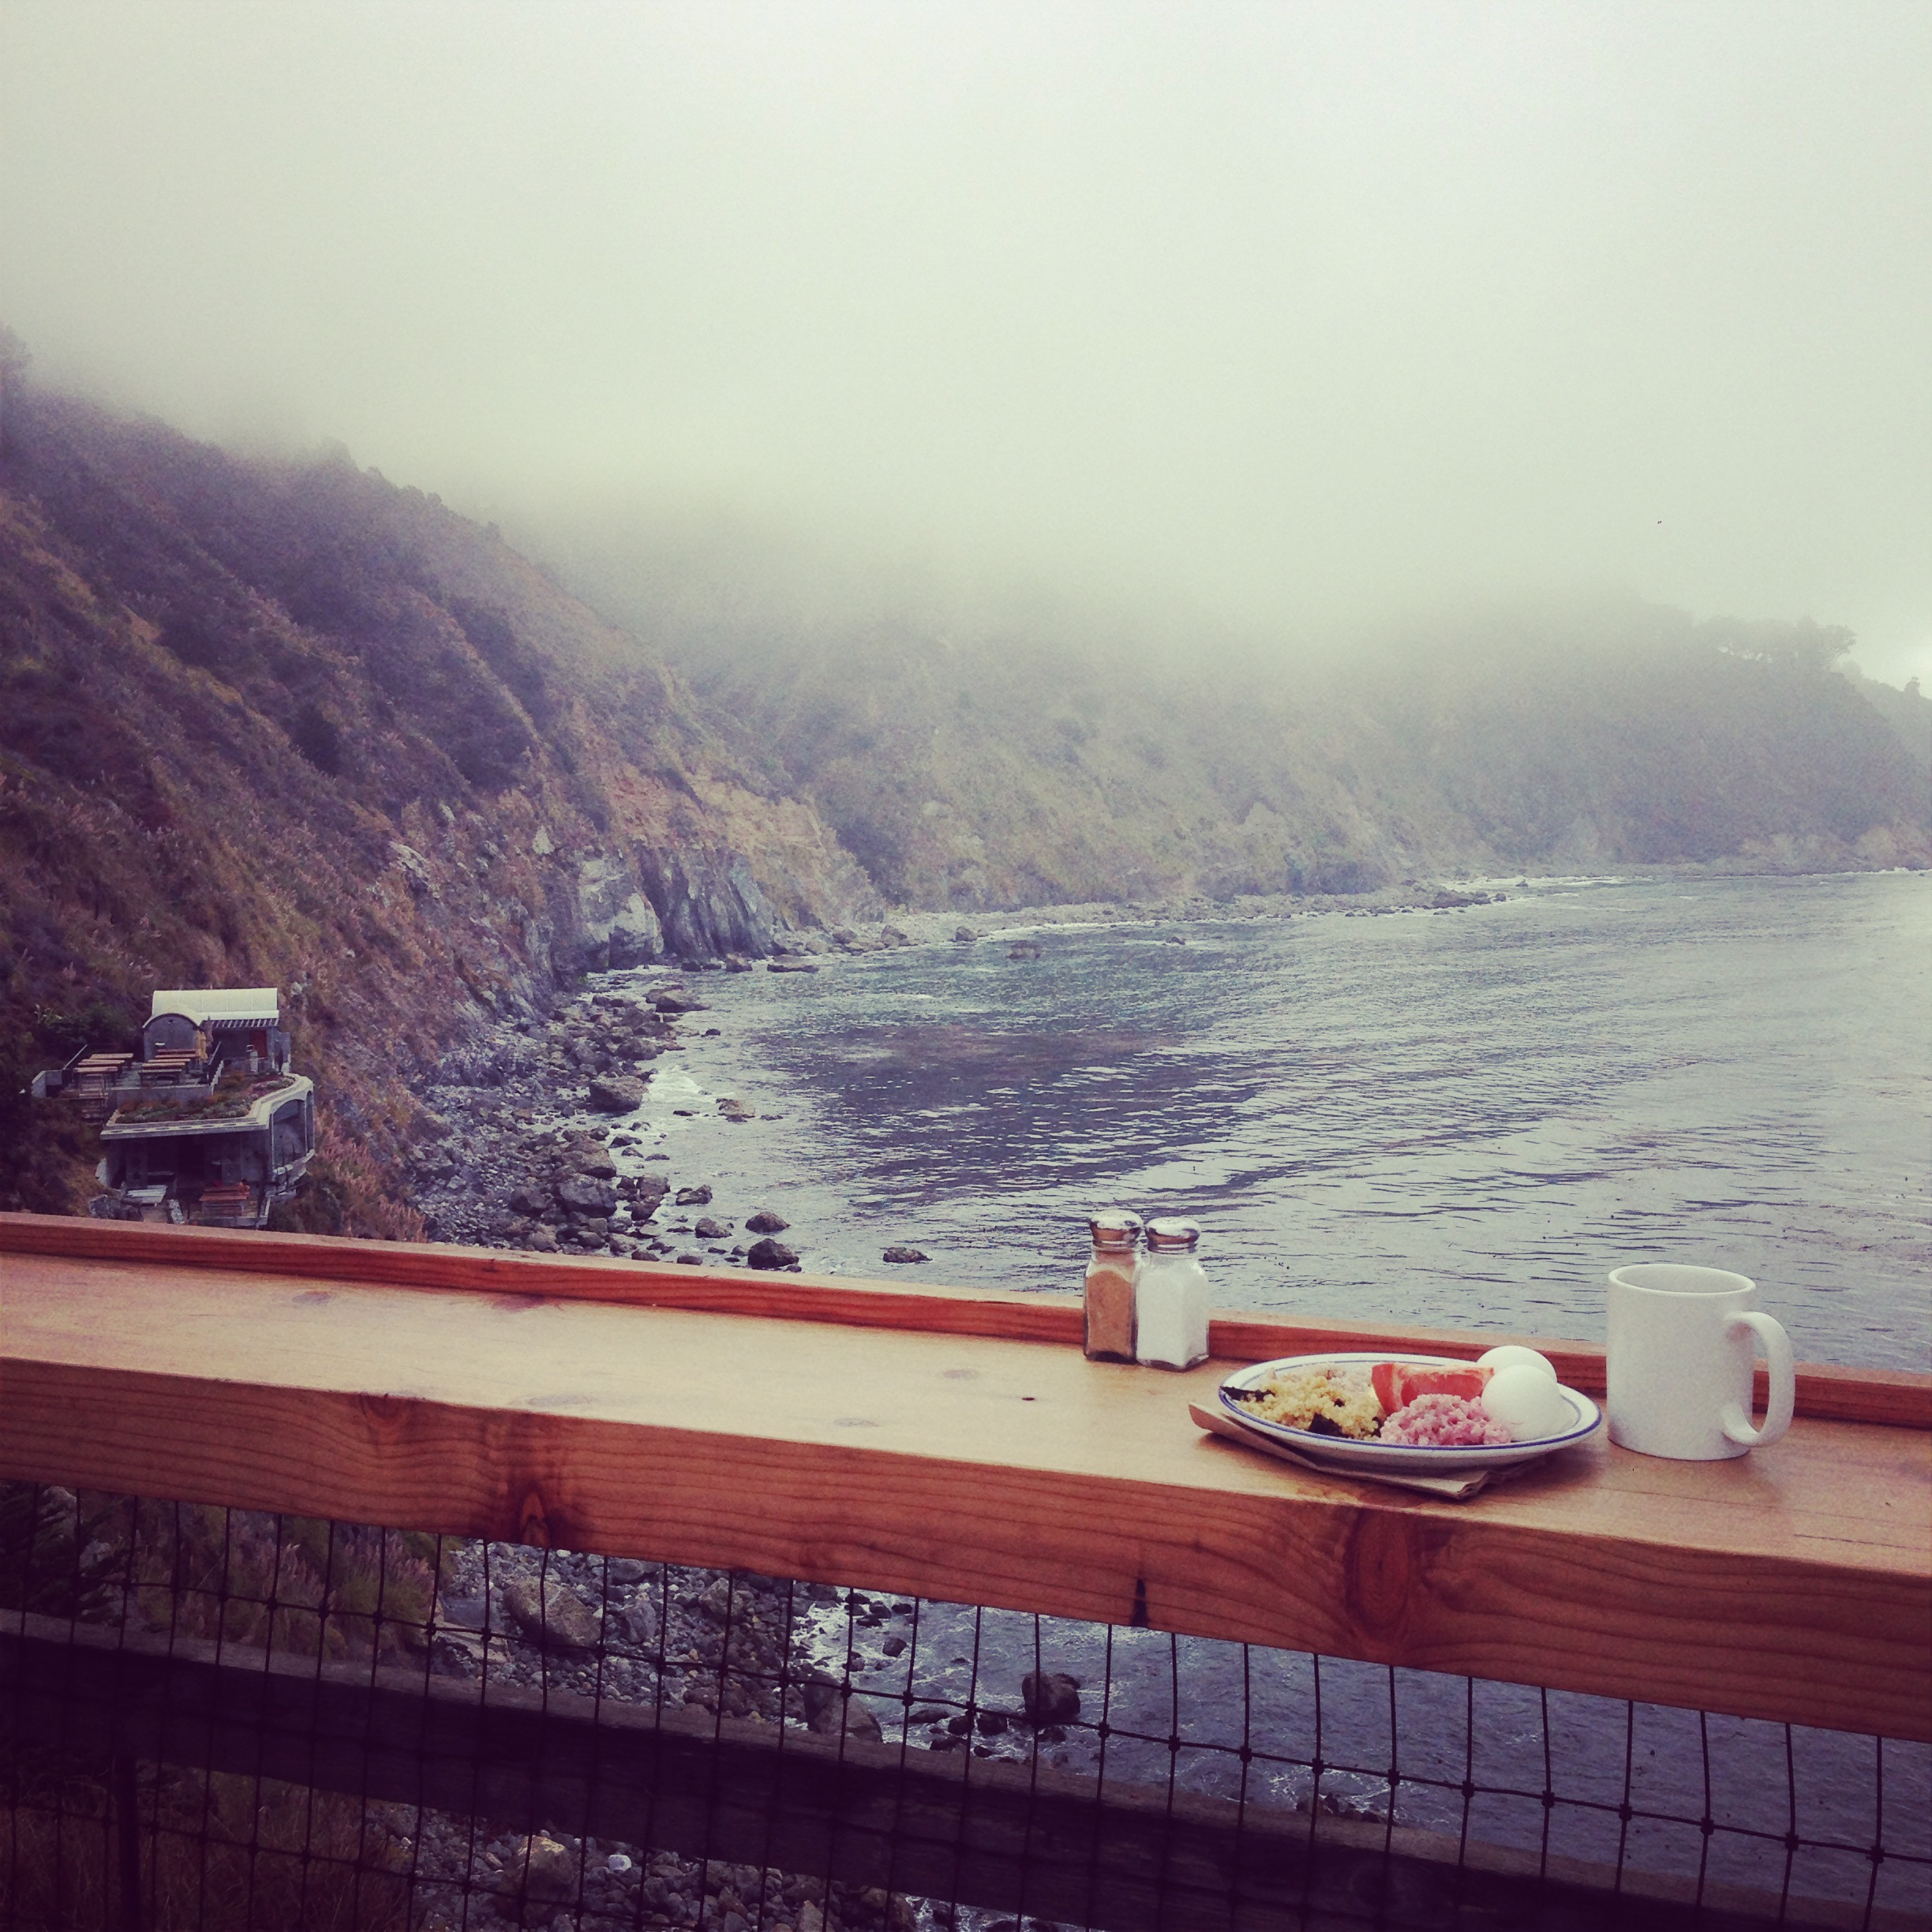 Rochelle's most beloved Sanctuary, Esalen Institute in Big Sur, California.